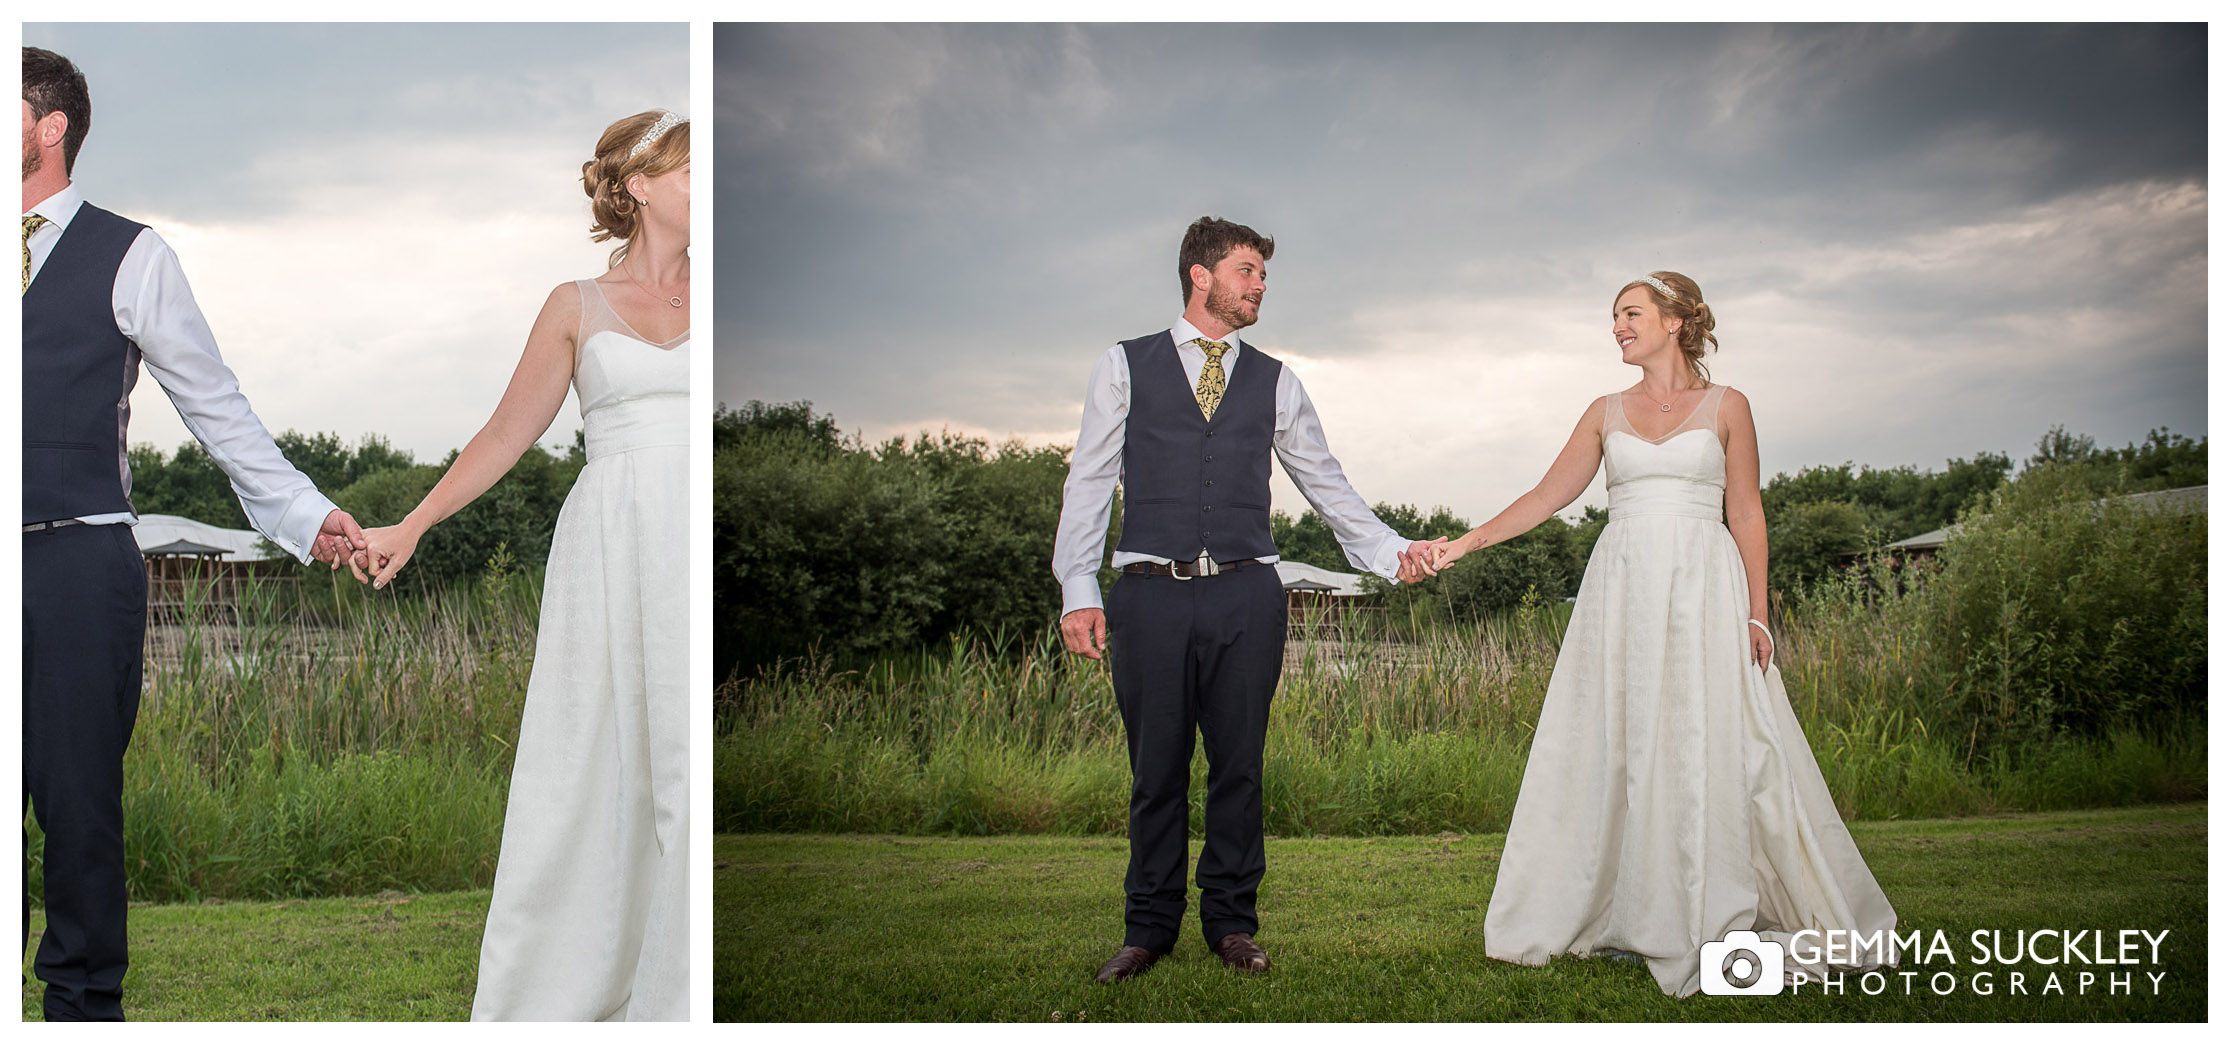 wedding photo of the bride and groom at Oaklands in East Yorkshire